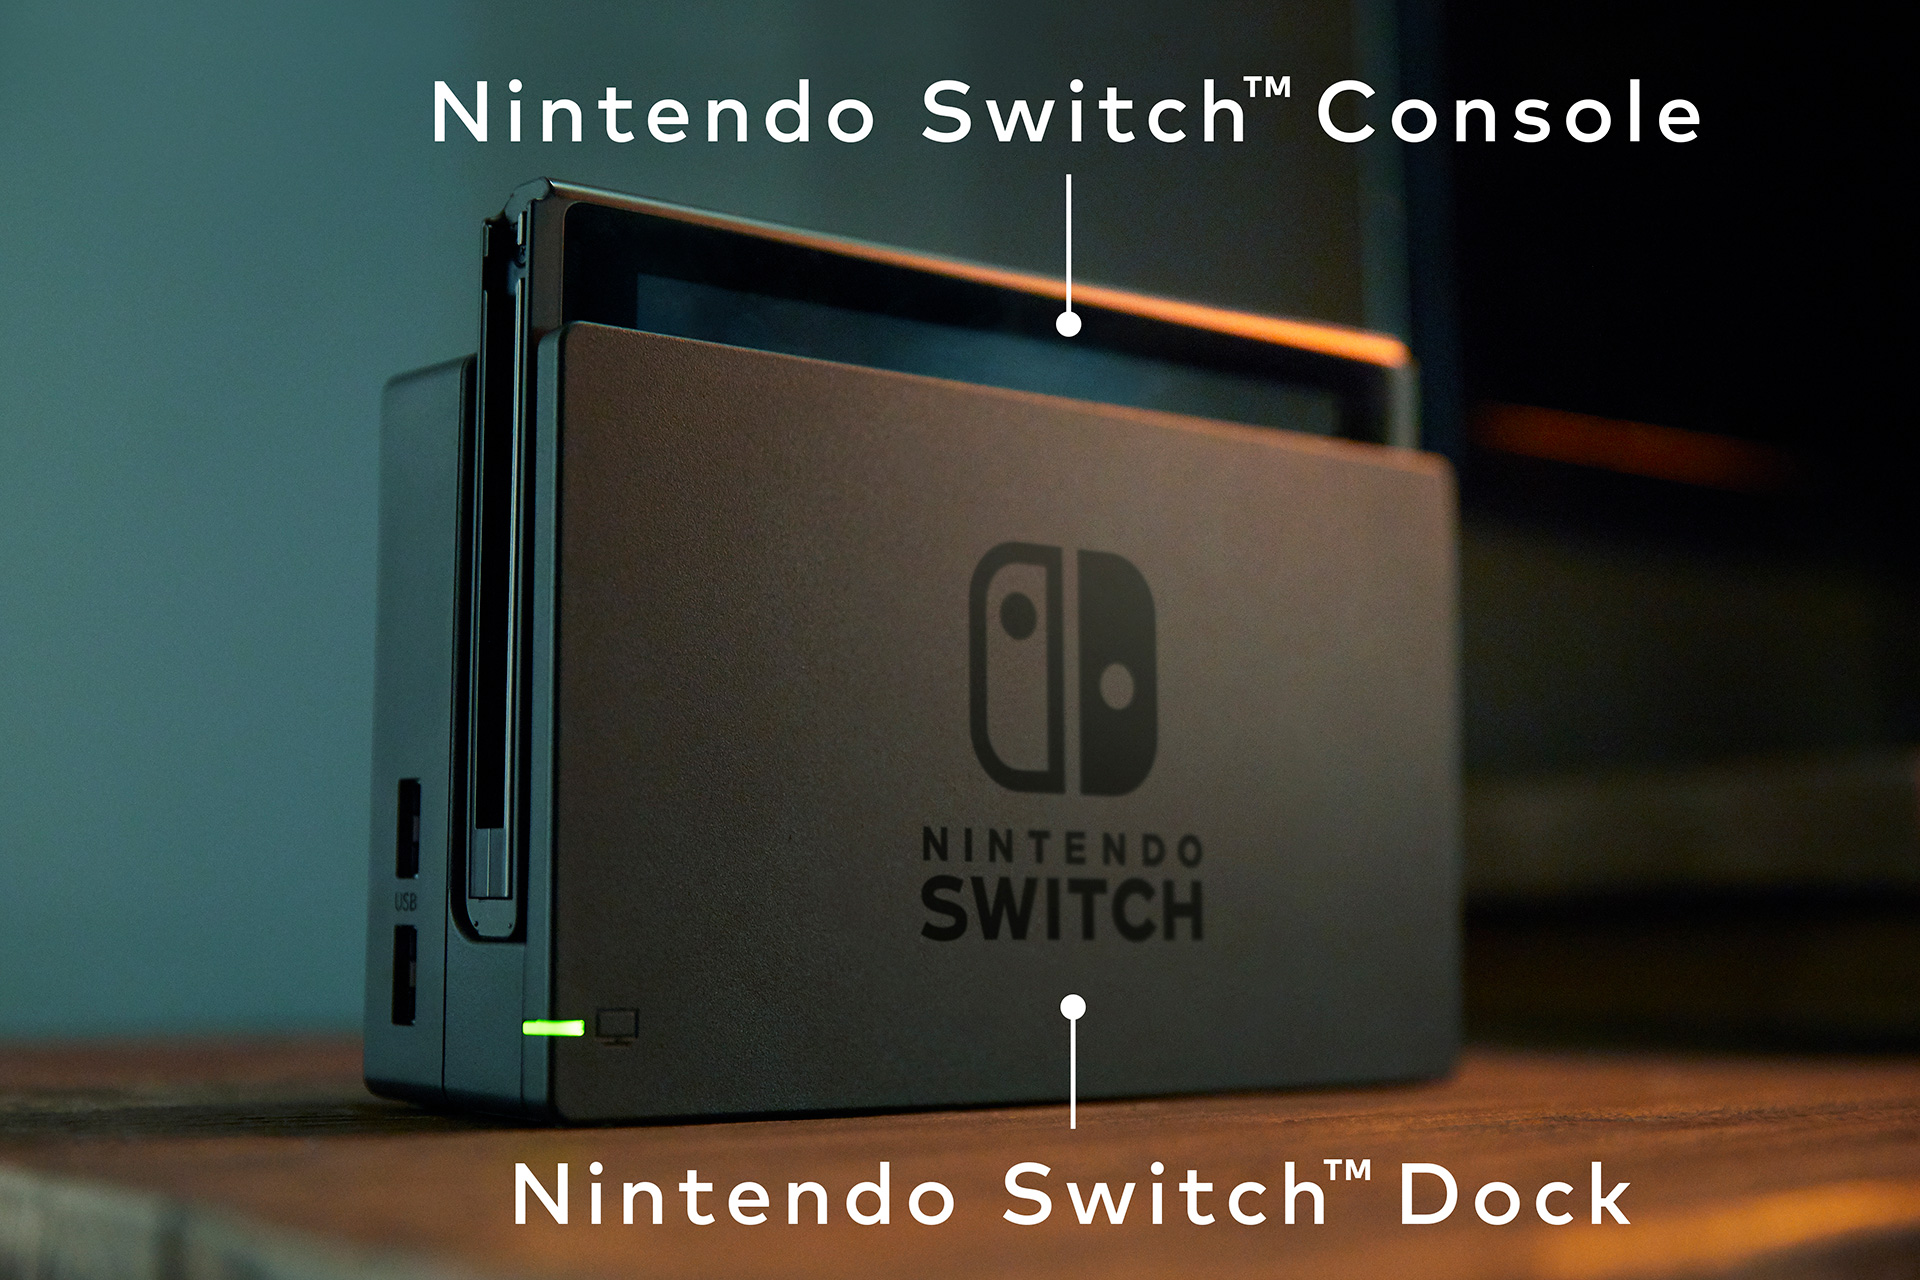 nintendo-switch-dock-photo_1920.jpg